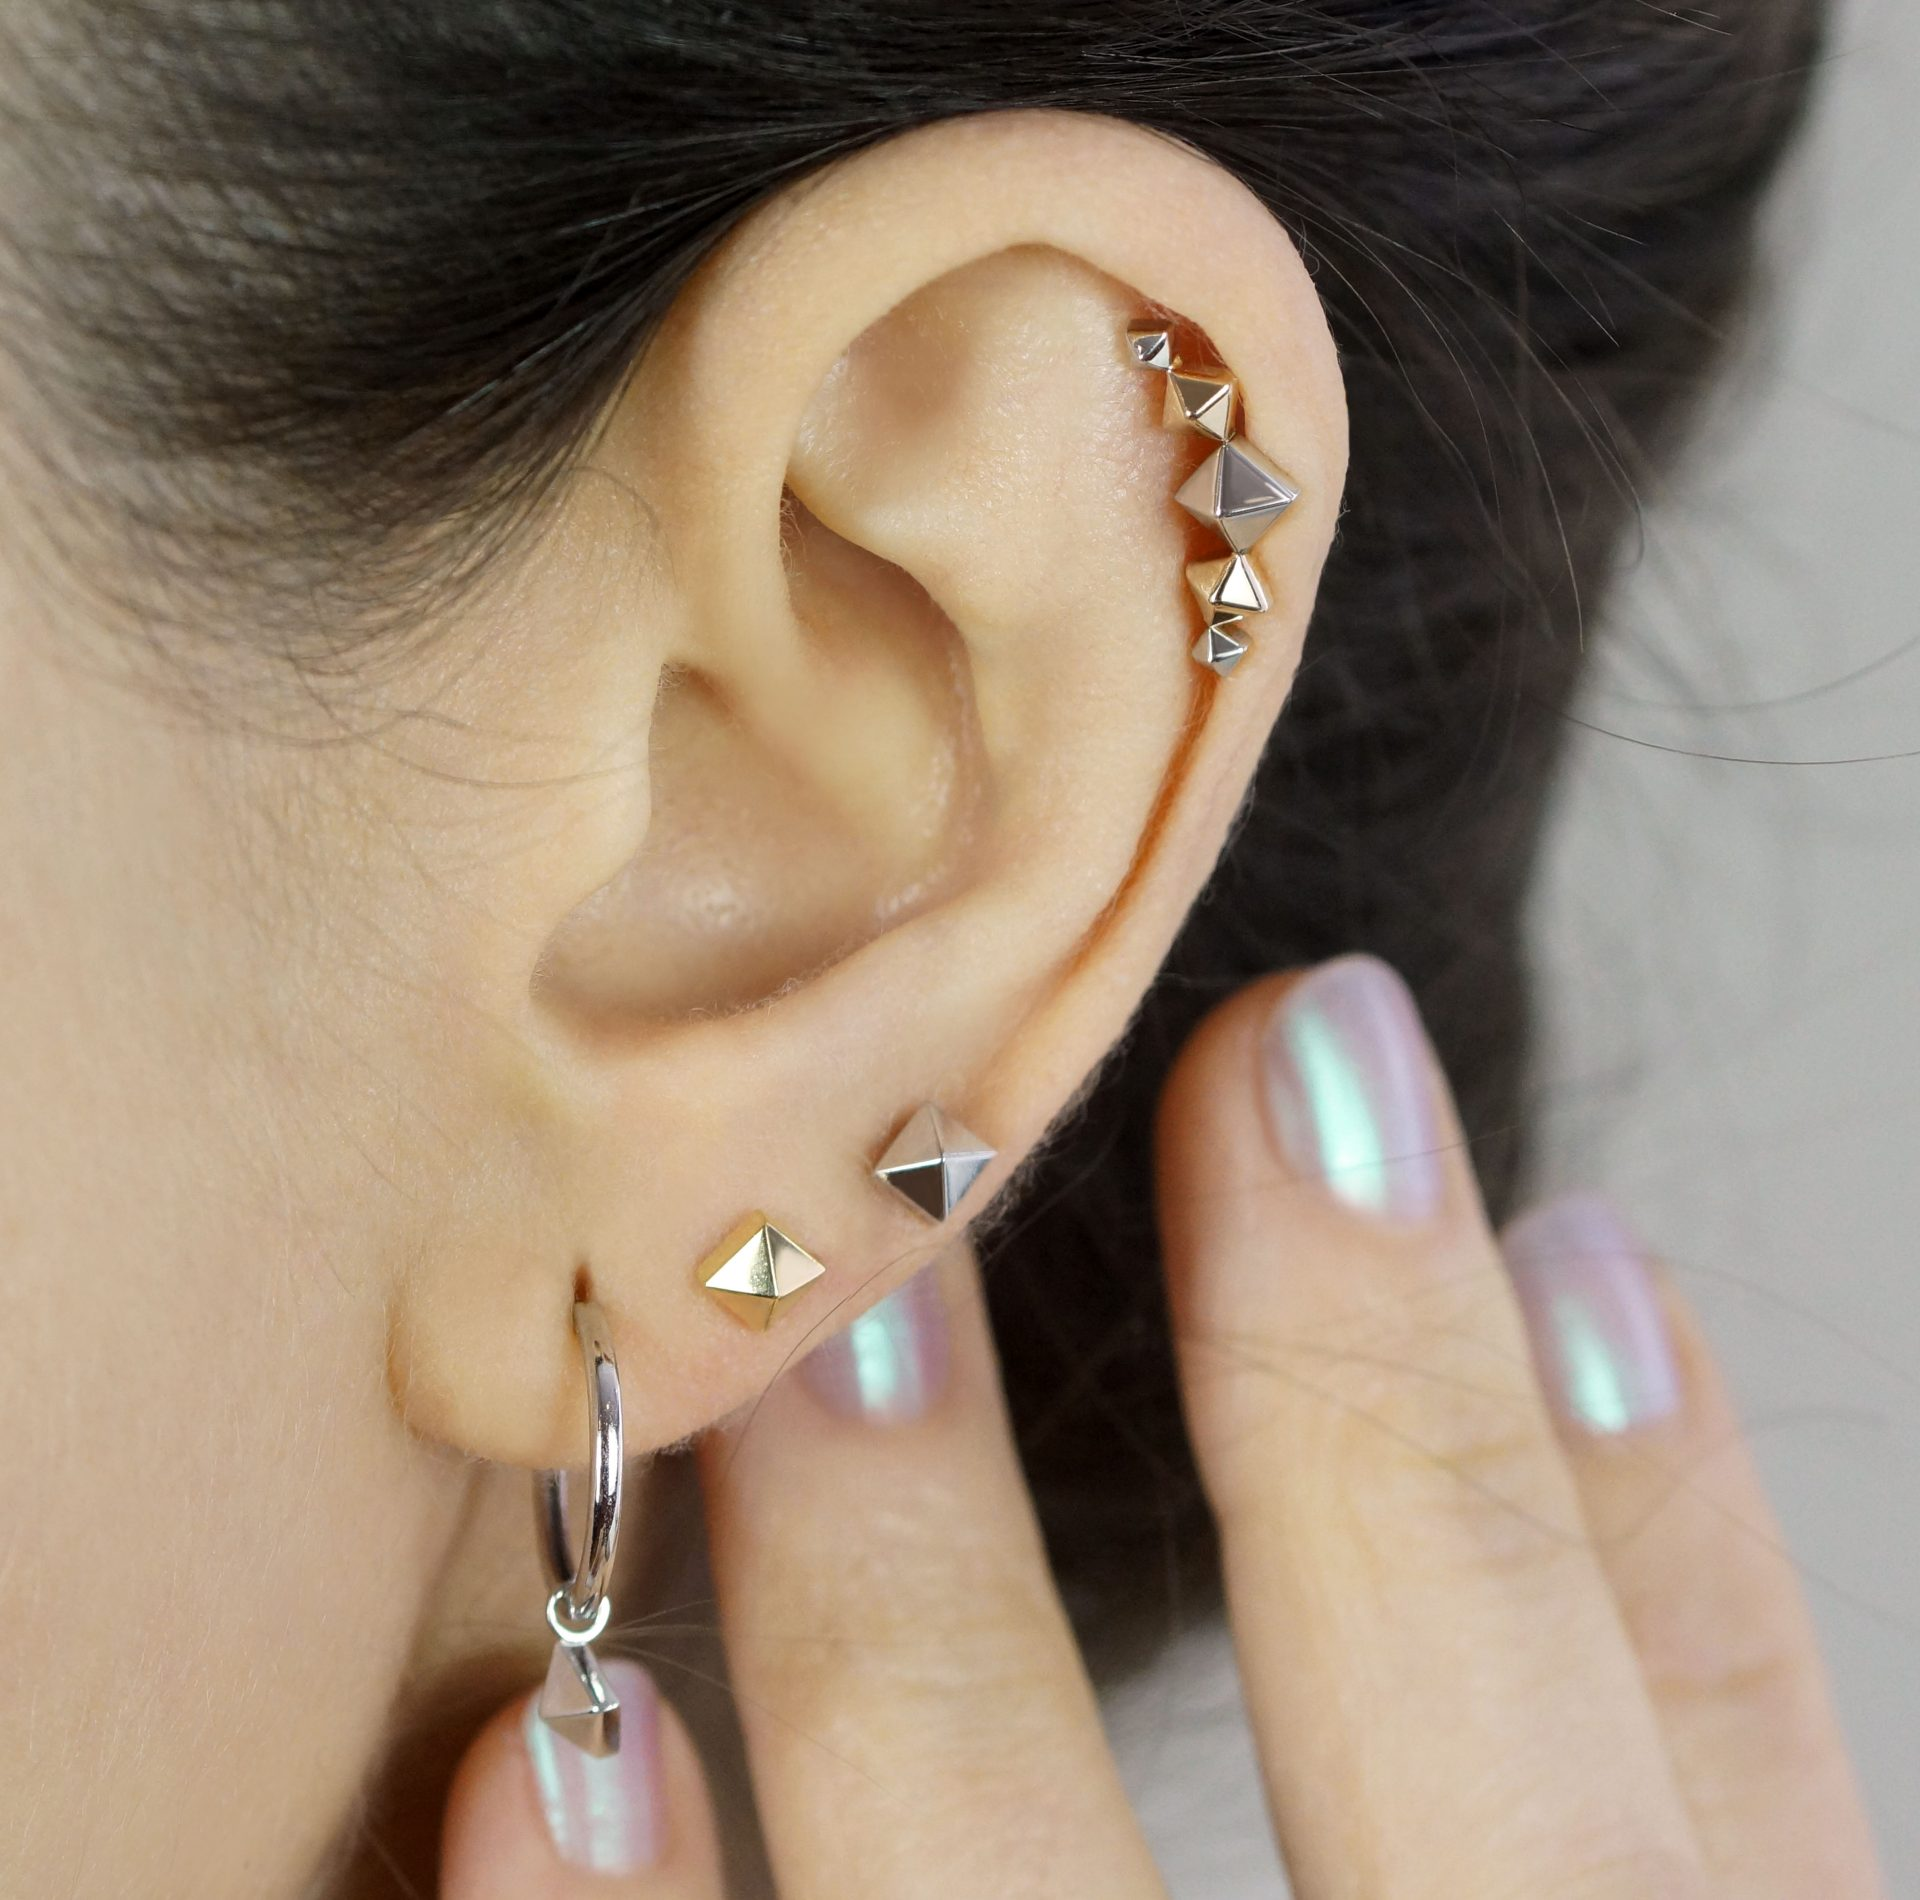 how-custom-order-piercing-jewelry-london-uk-lena-cohen-earrings